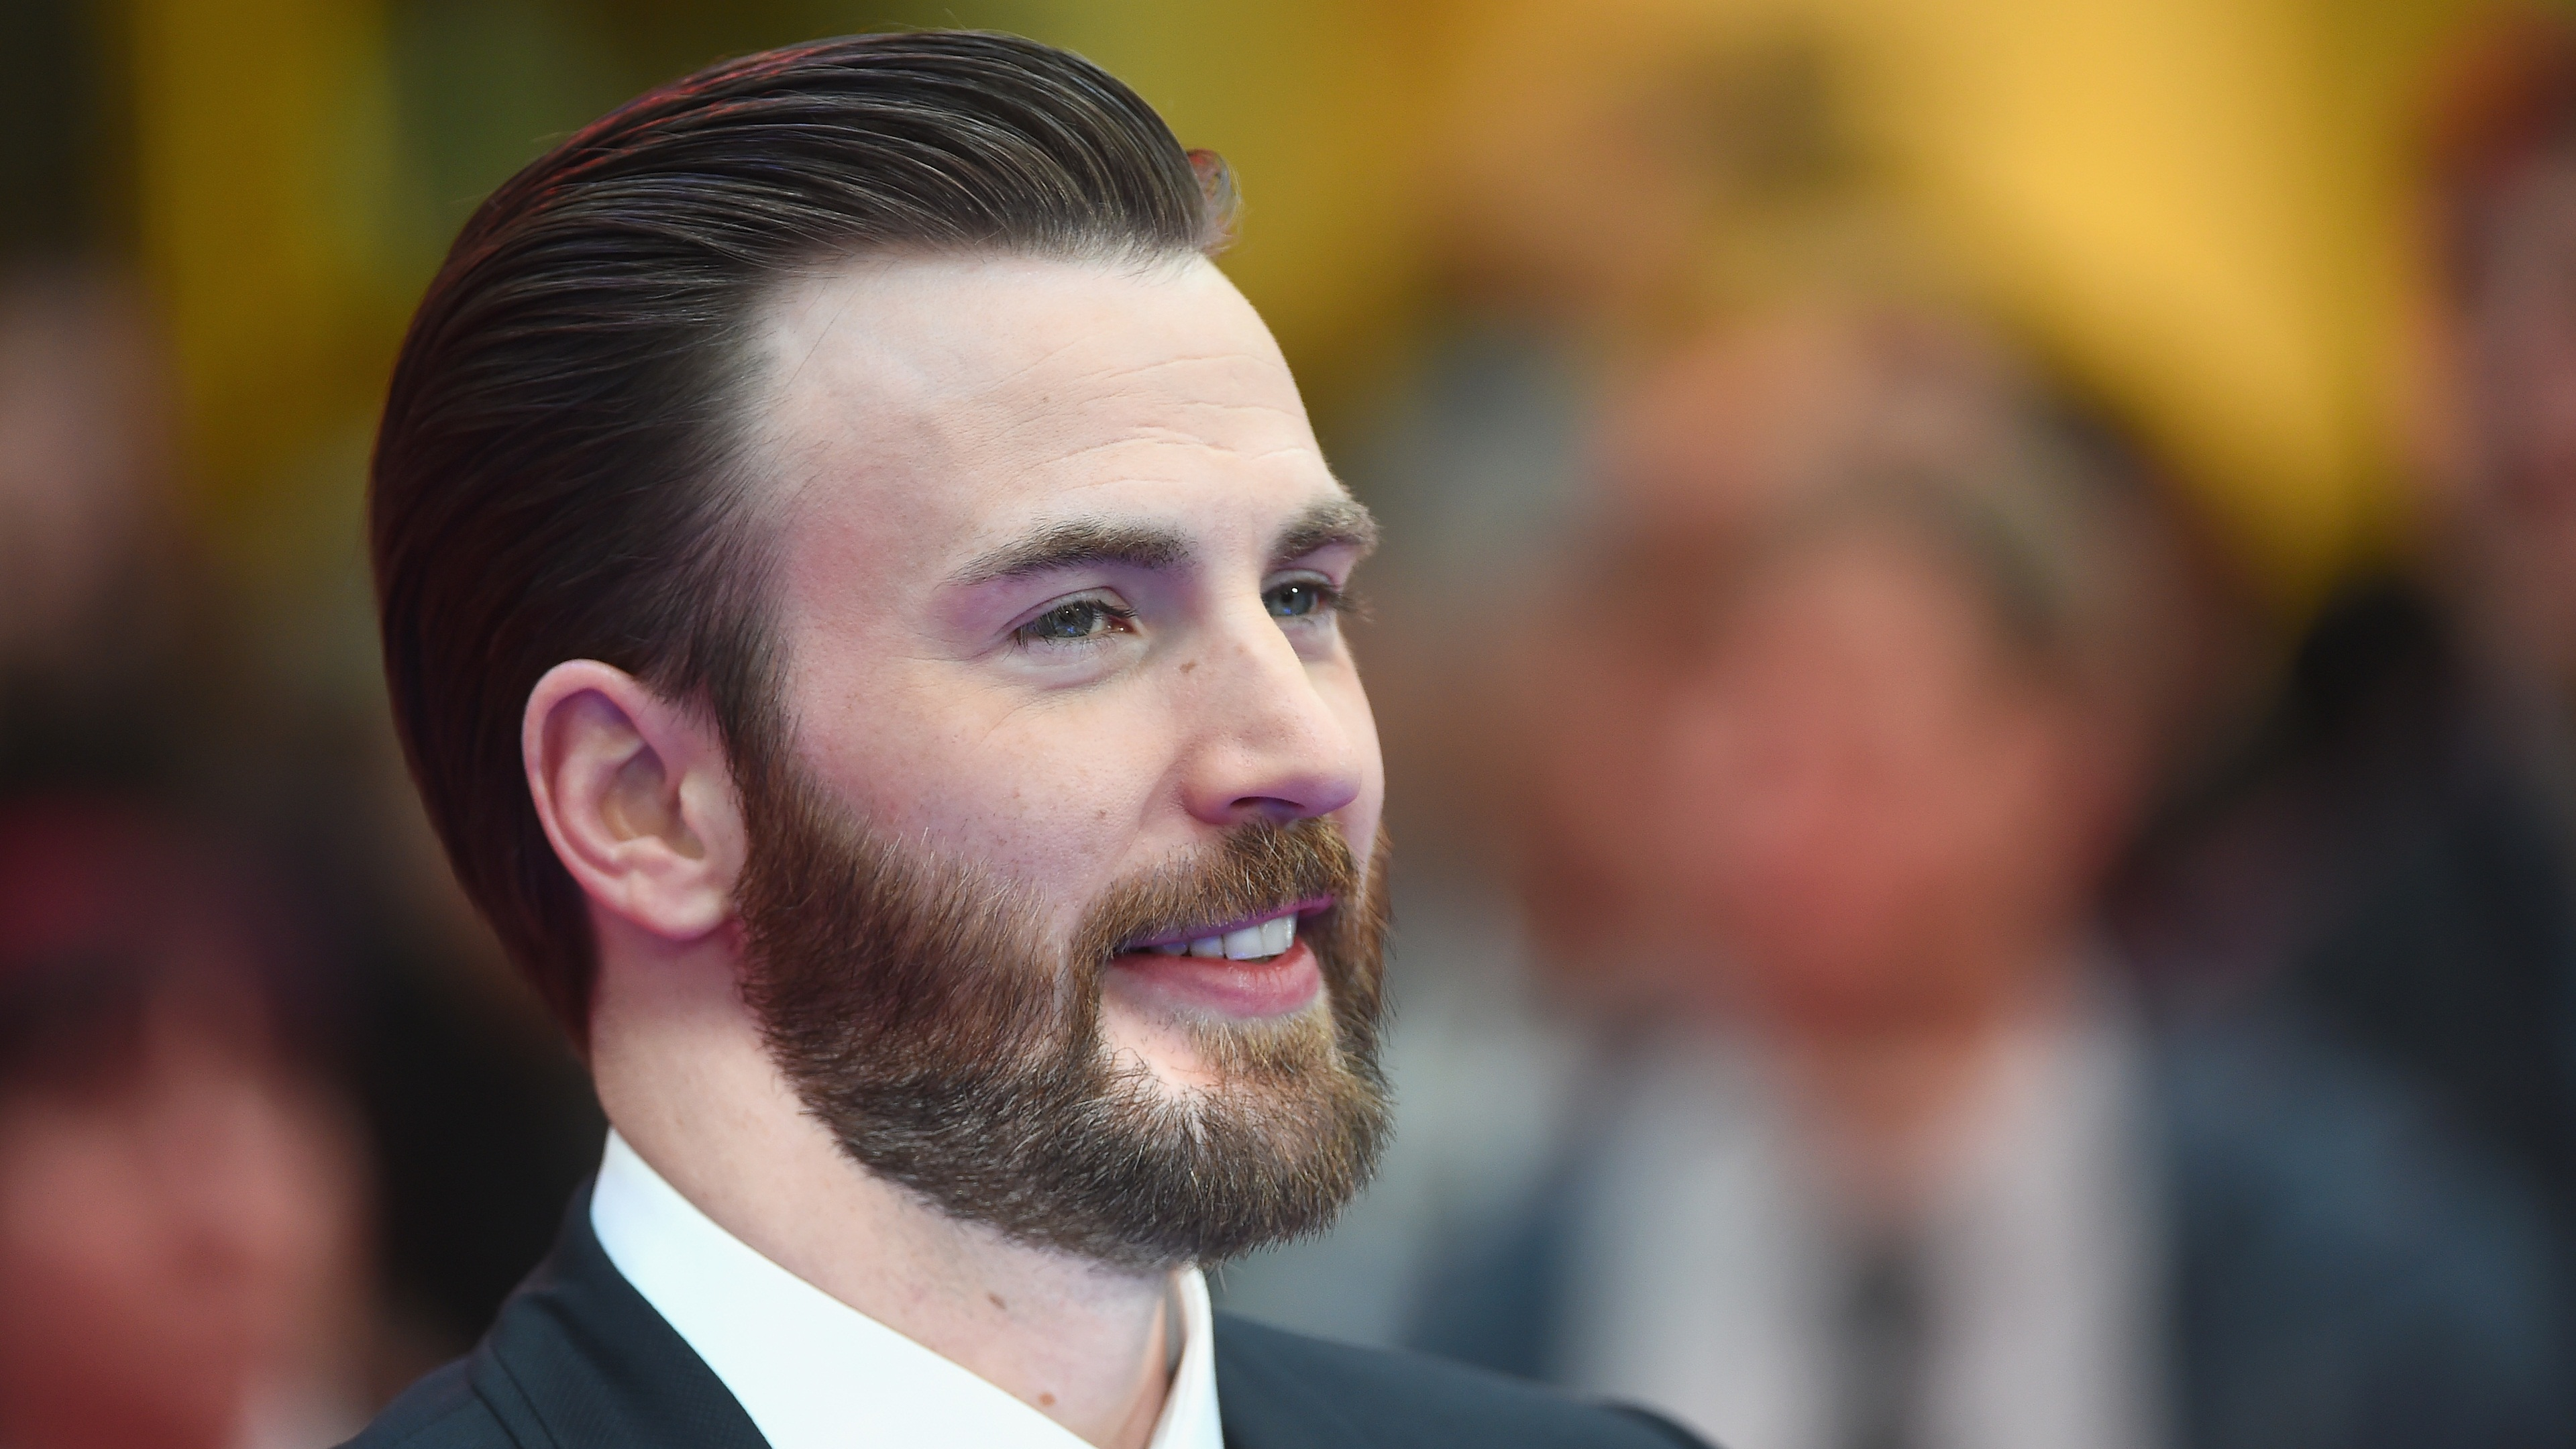 Chris Evans Wallpapers HD Backgrounds Images Pics Photos 3840x2160